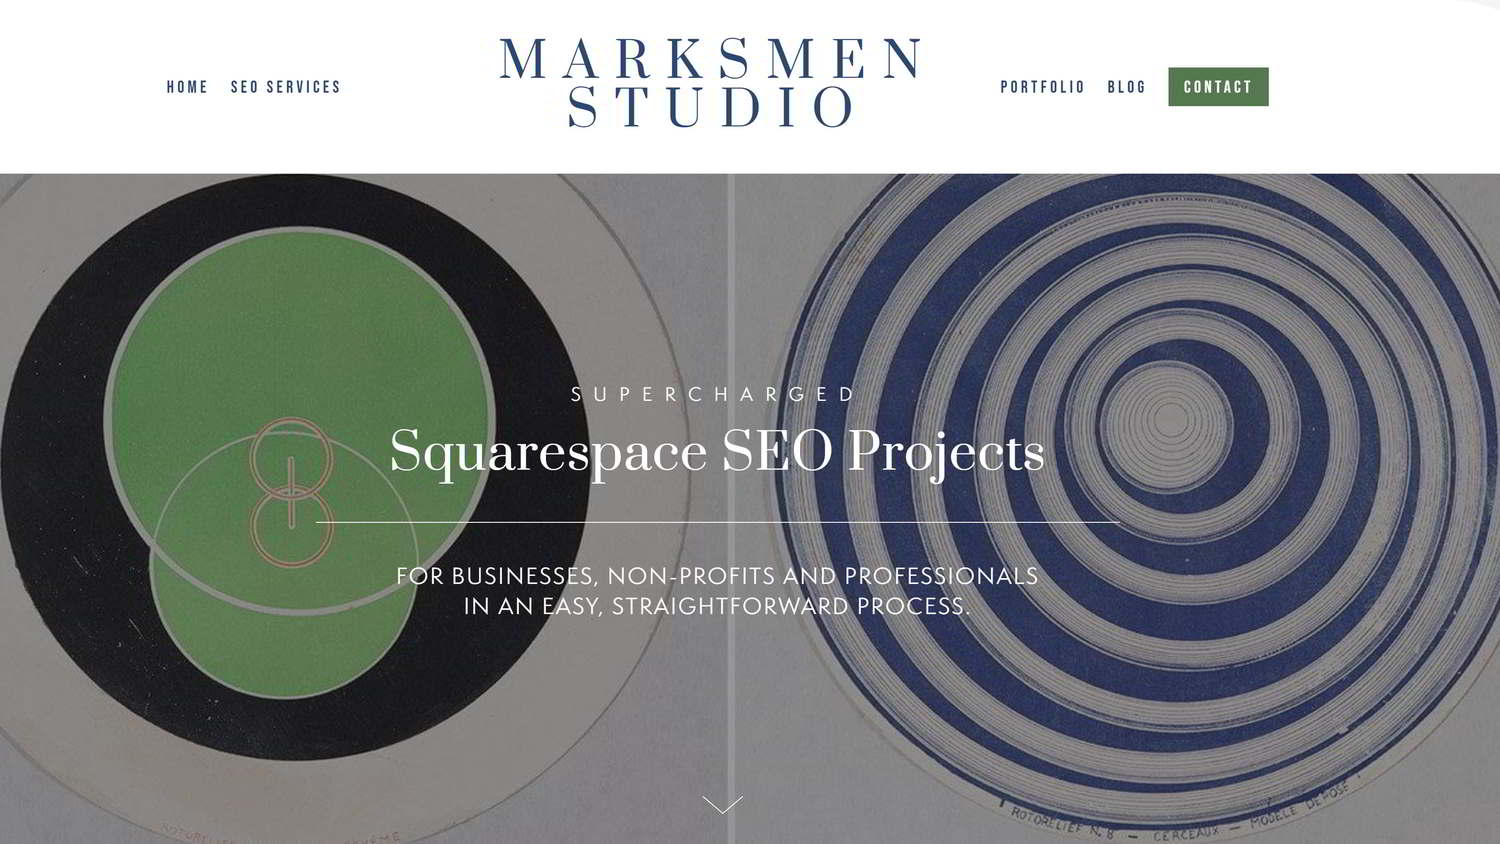 That scroll indicator at the bottom bounces  on the Marksmen Studio website home page .